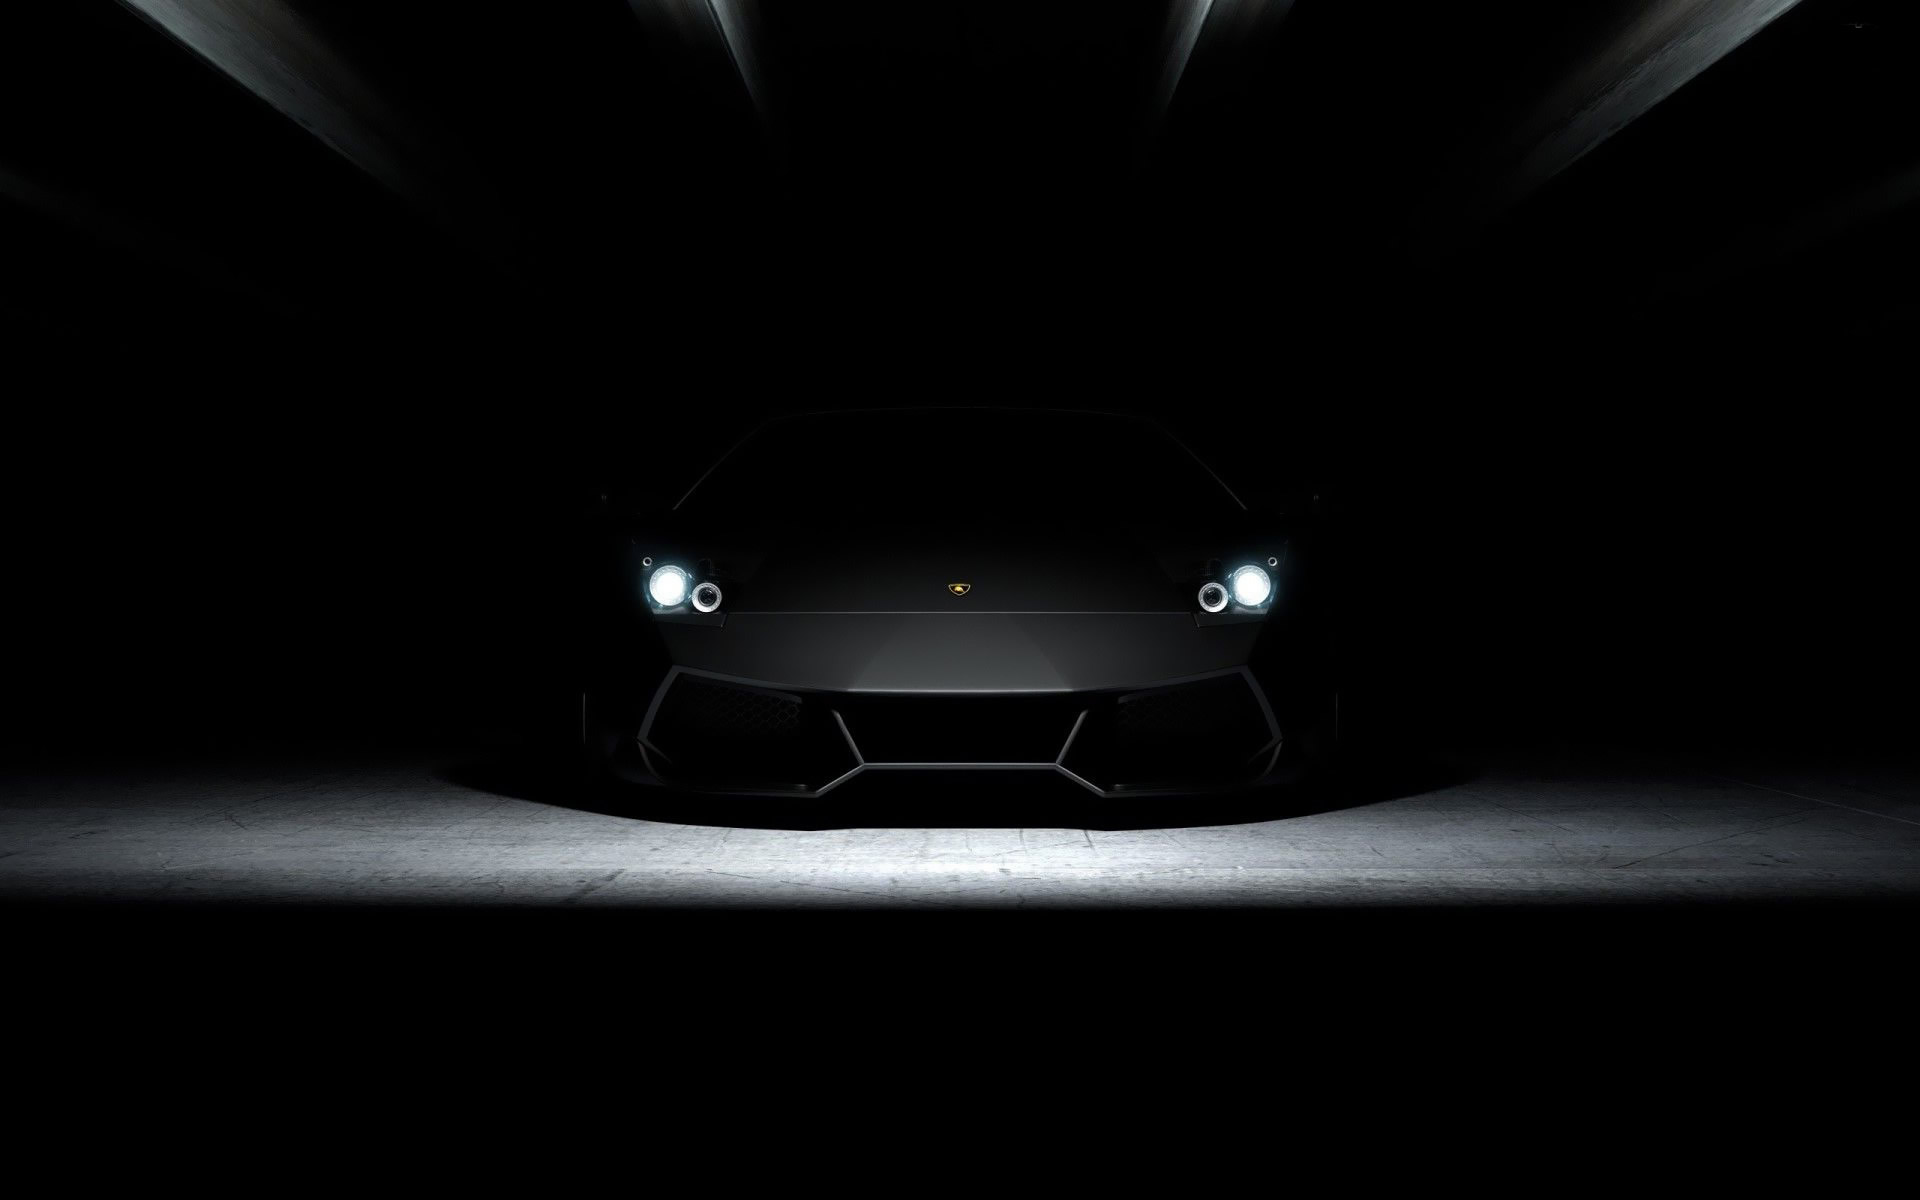 Lamborghini Aventador Black Wallpaper Hd wallpaper - 699151 ...